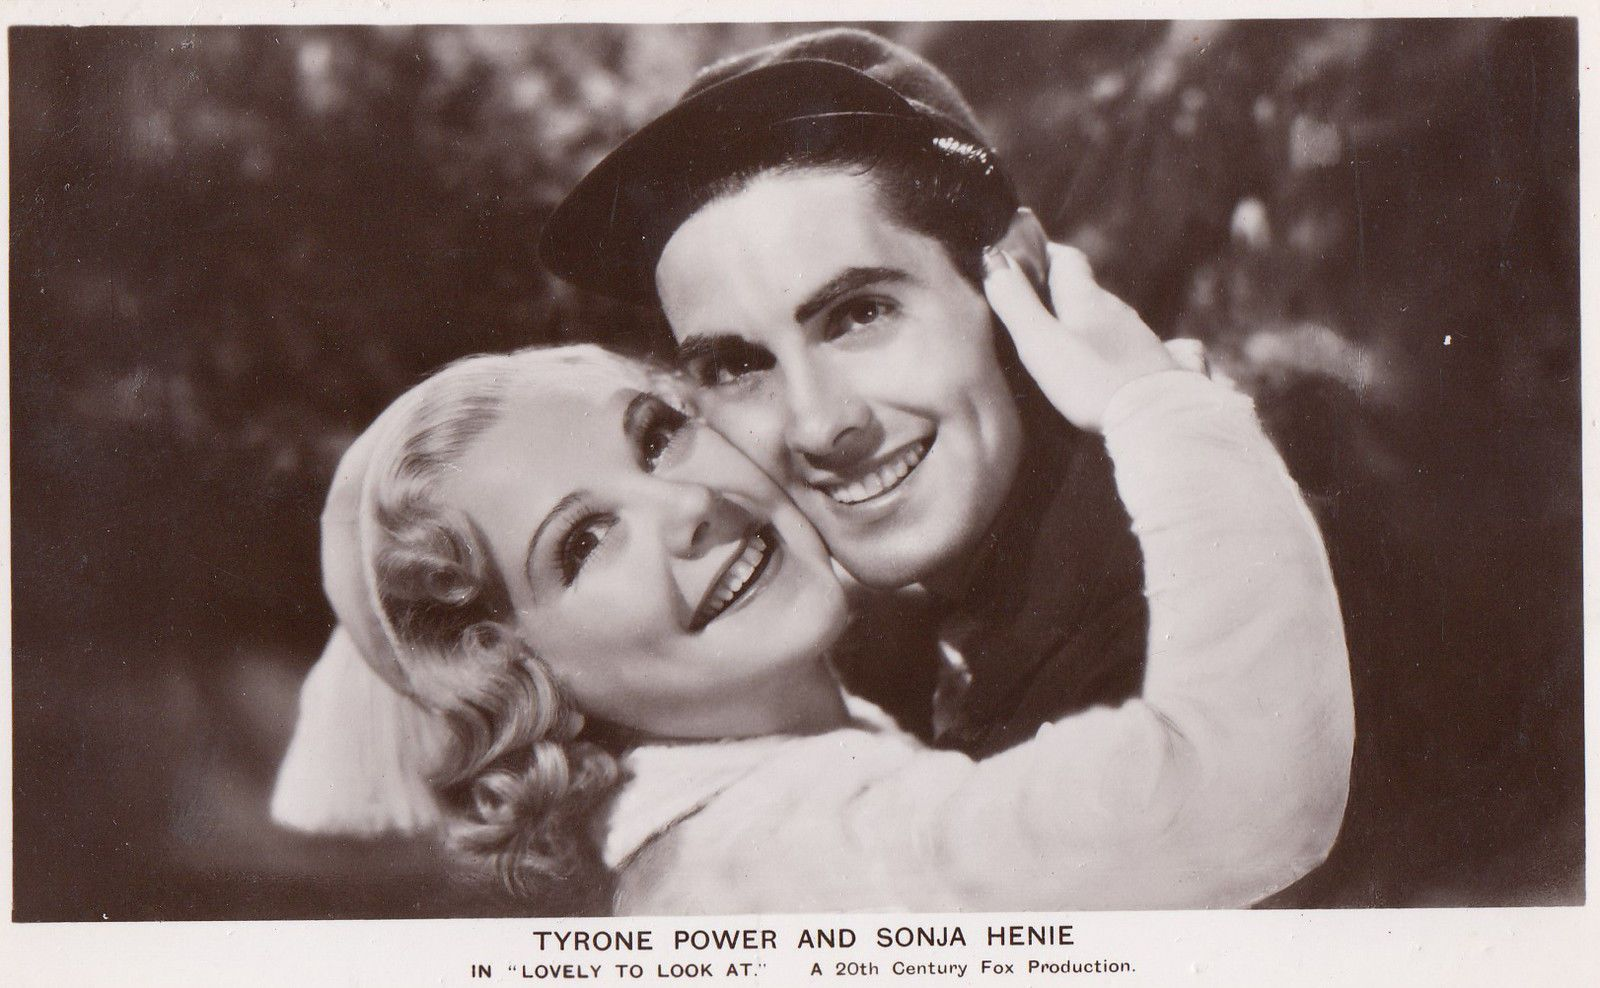 Tyrone Power & Sonja Henie Lovely To Look At Vintage Film